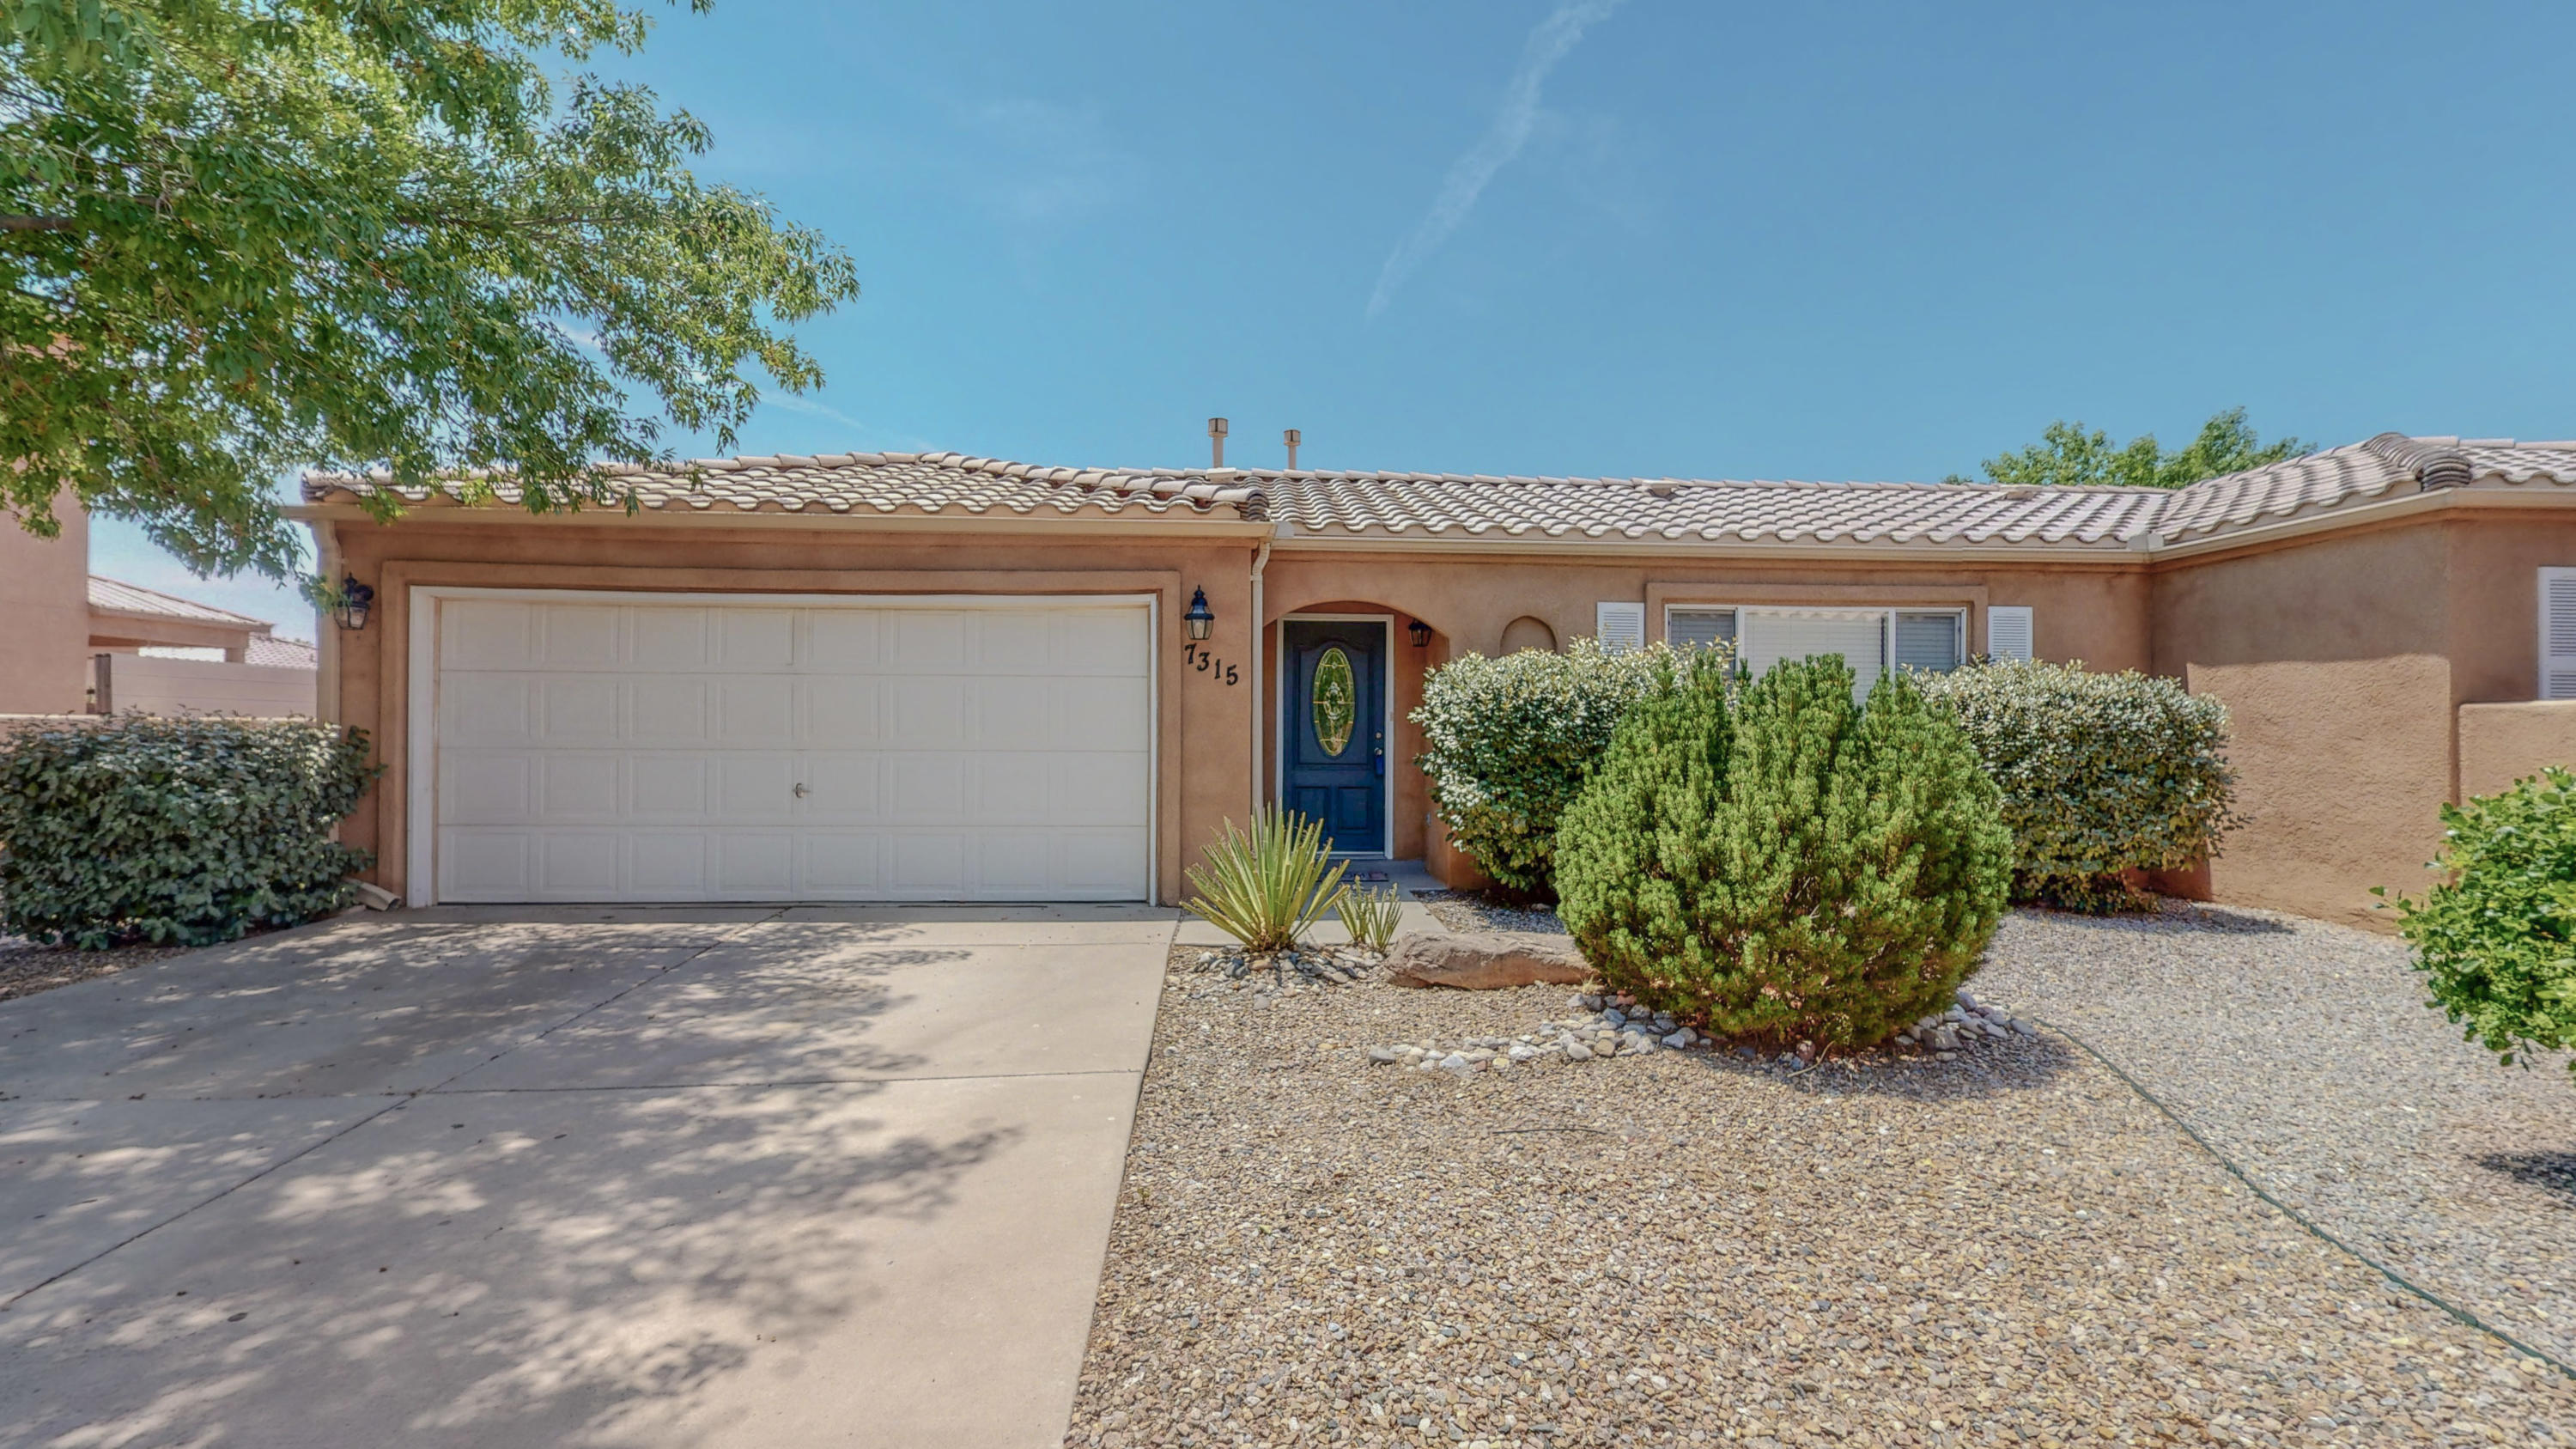 Wow!  Super clean updated 3 bedroom home in Vista Del Norte now available!   Located in a quiet cul-de-sac, this charming home features new MasterCool evaporative cooler, a light and bright floor plan, tastefully updated kitchen and bathrooms, huge backyard, tile roof!  This is a must see!